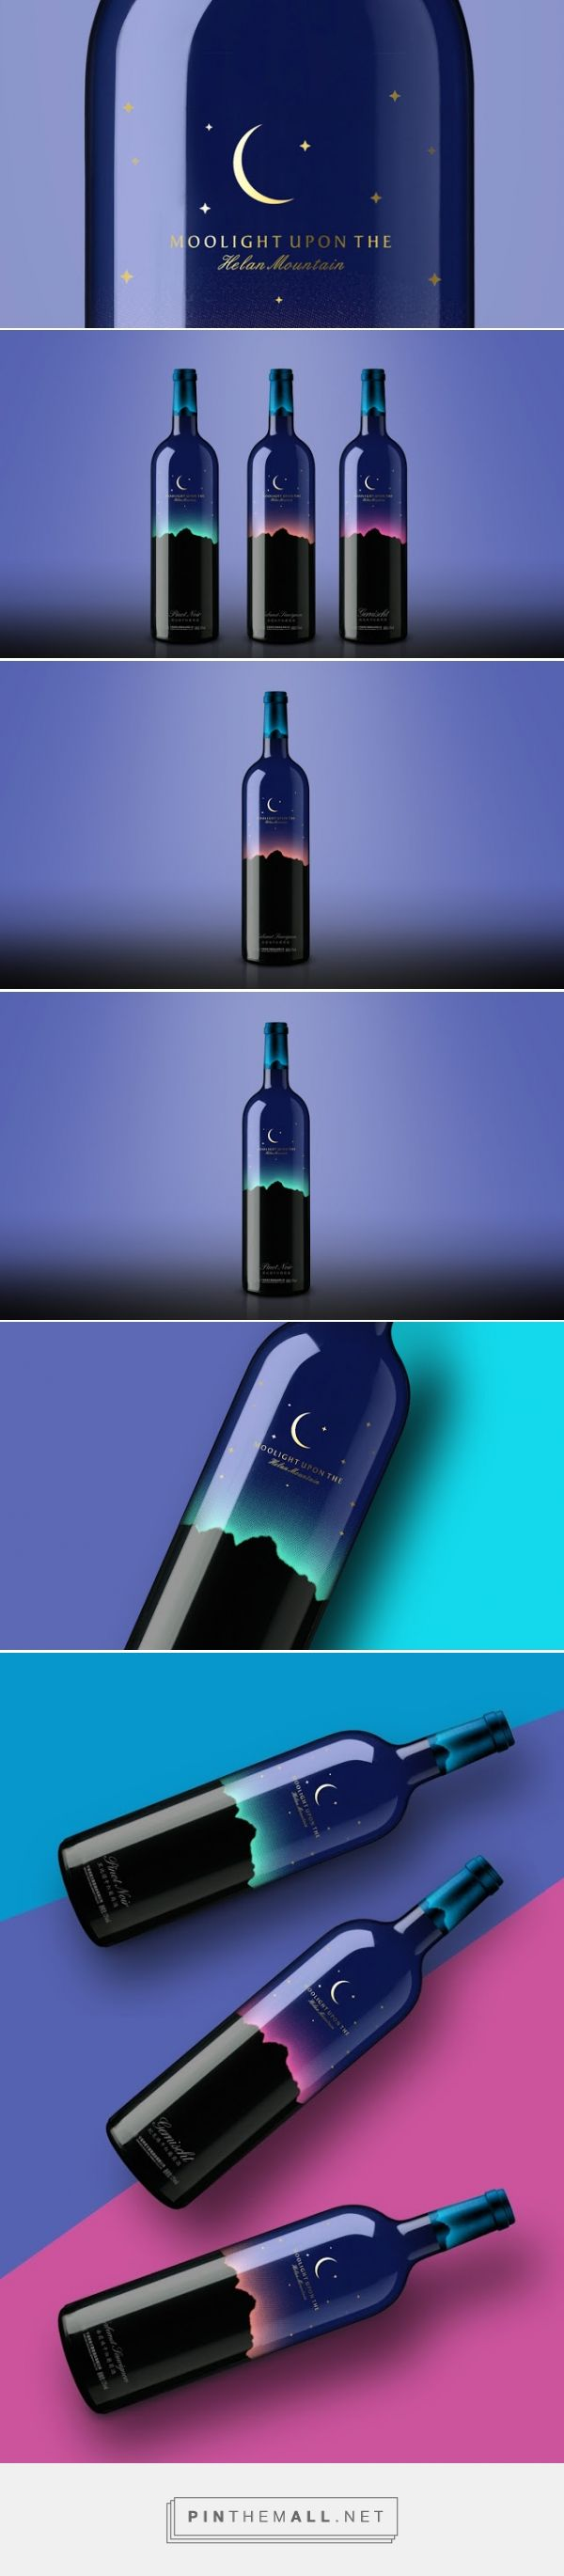 Agency: Pesign Design Project Type: Produced, Commercial Work Packaging Content: Wine Location: Shen Zhen, China. 2015 top team pin PD